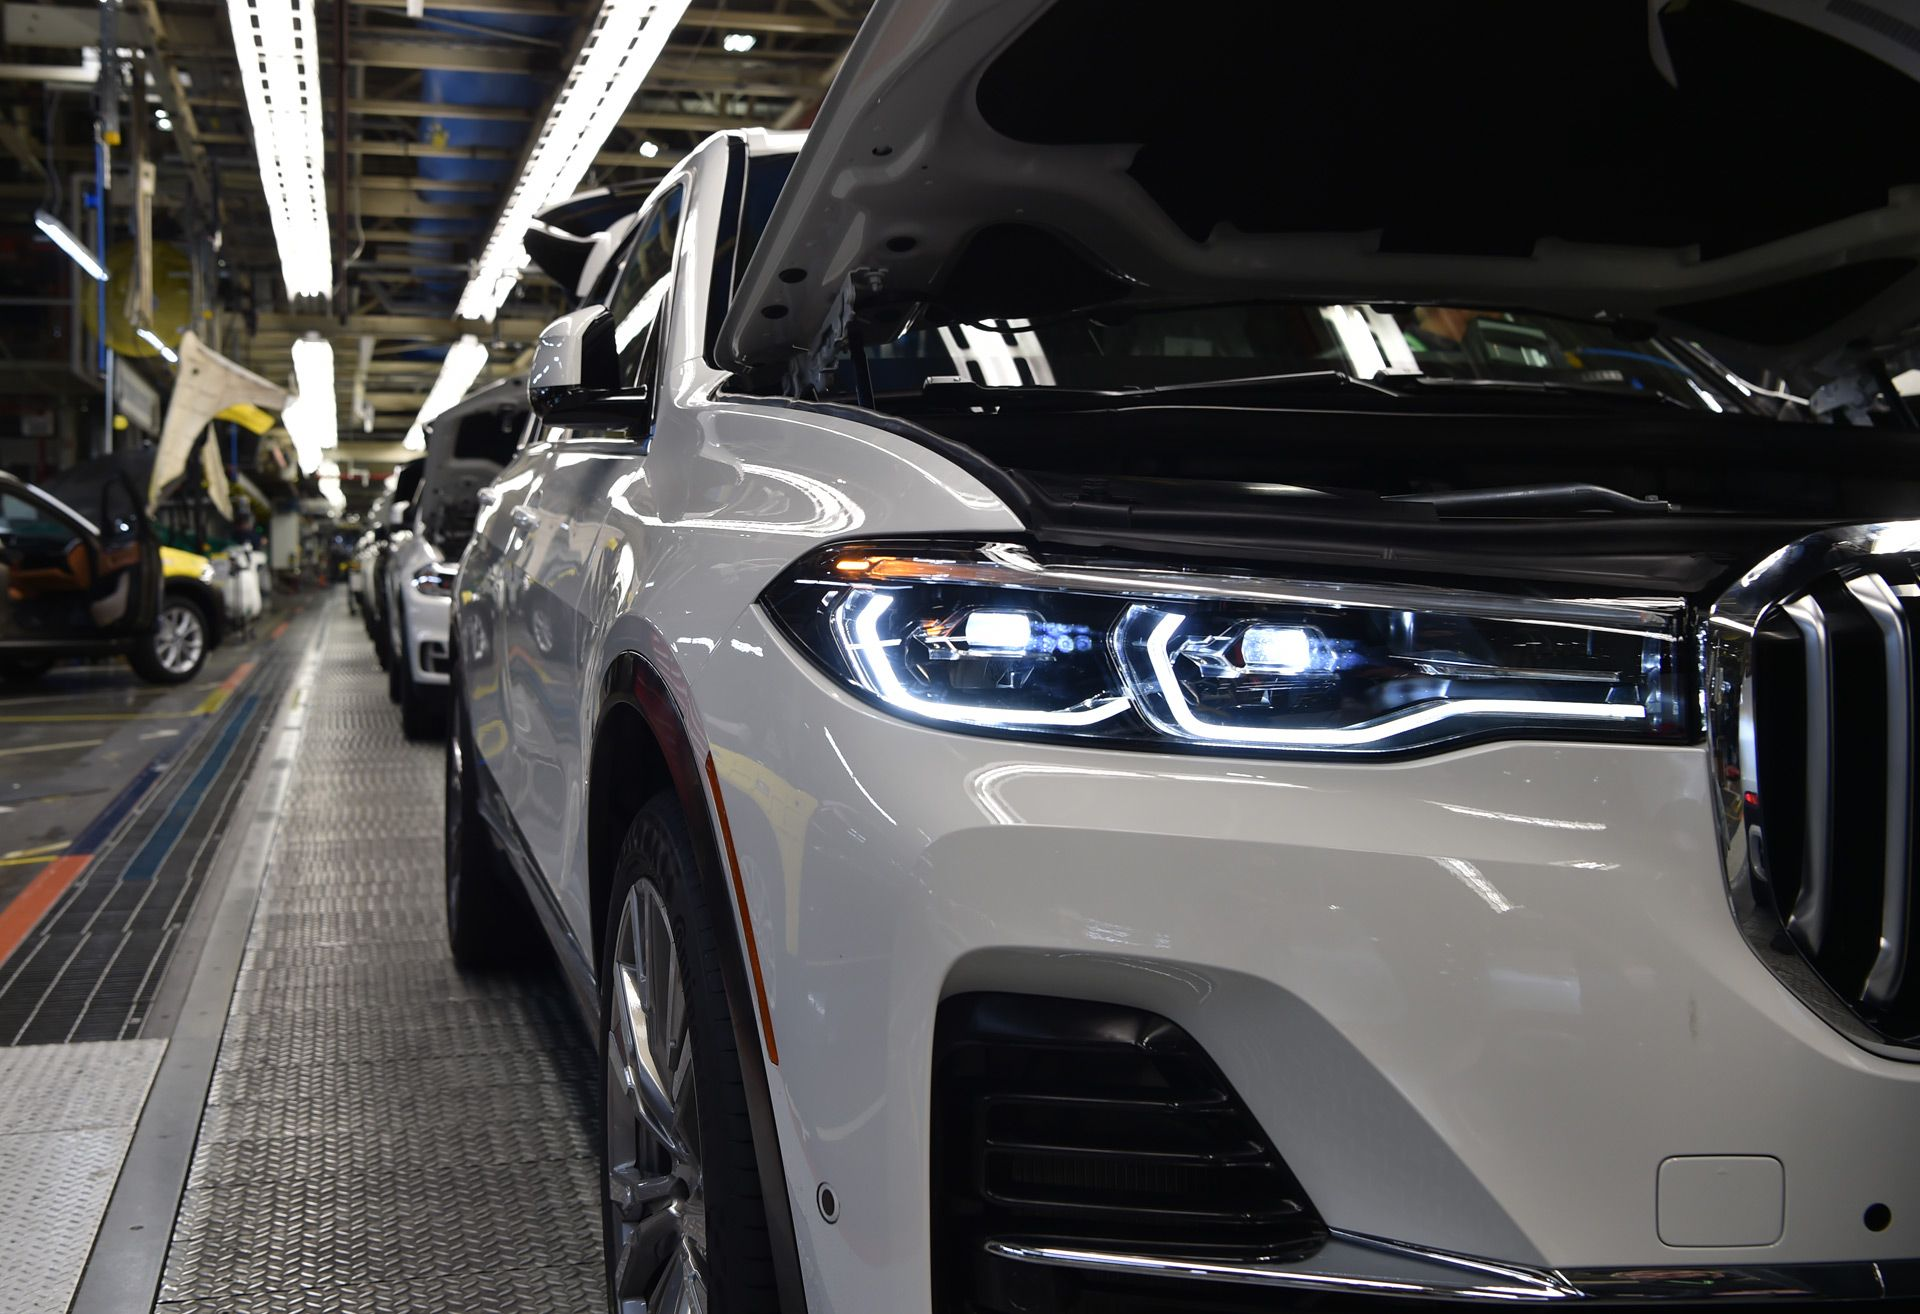 2019 Bmw X7 Price Specs Overview And Full Size Suv Dengan Gambar